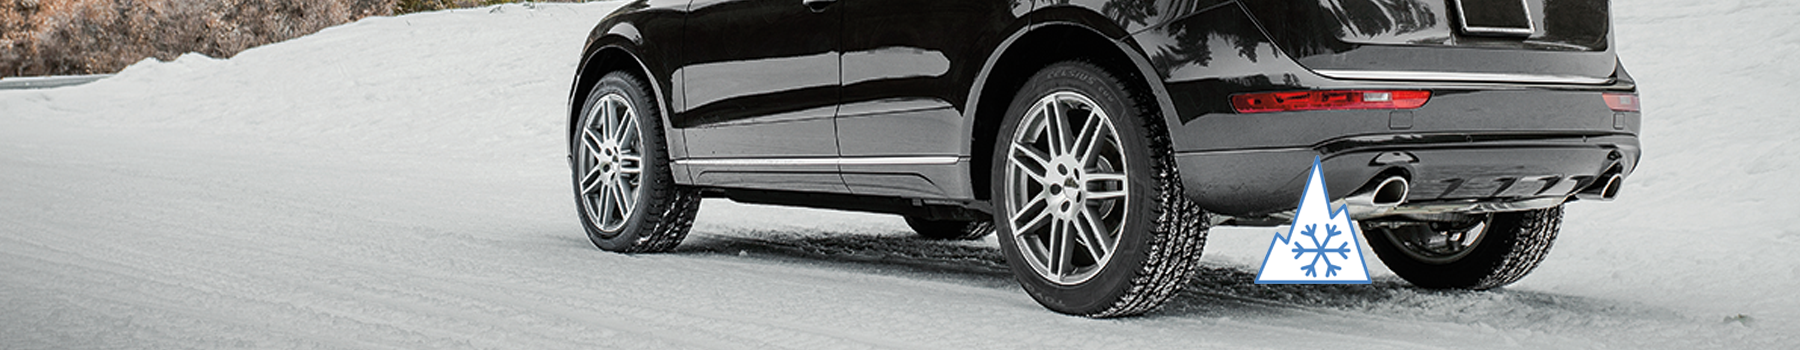 CUV with Toyo Celsius CUV all weather tires on a snowy road.